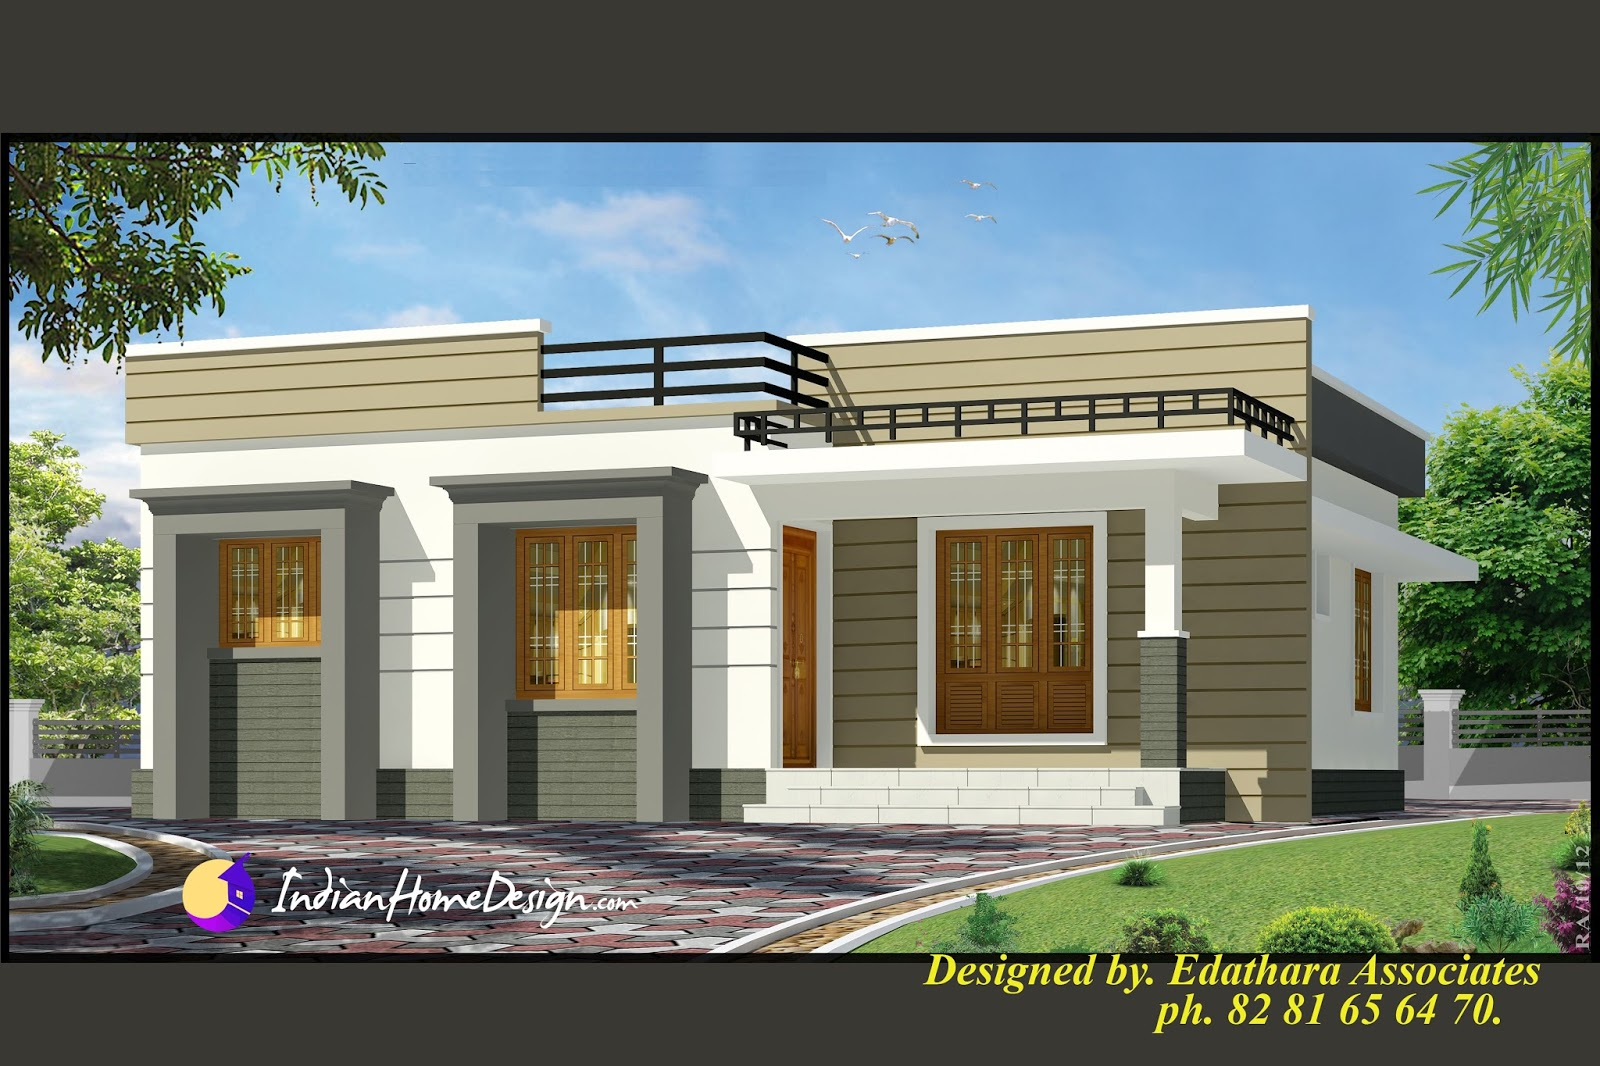 998 sqft modern single floor kerala home design indian for Single floor house designs tamilnadu